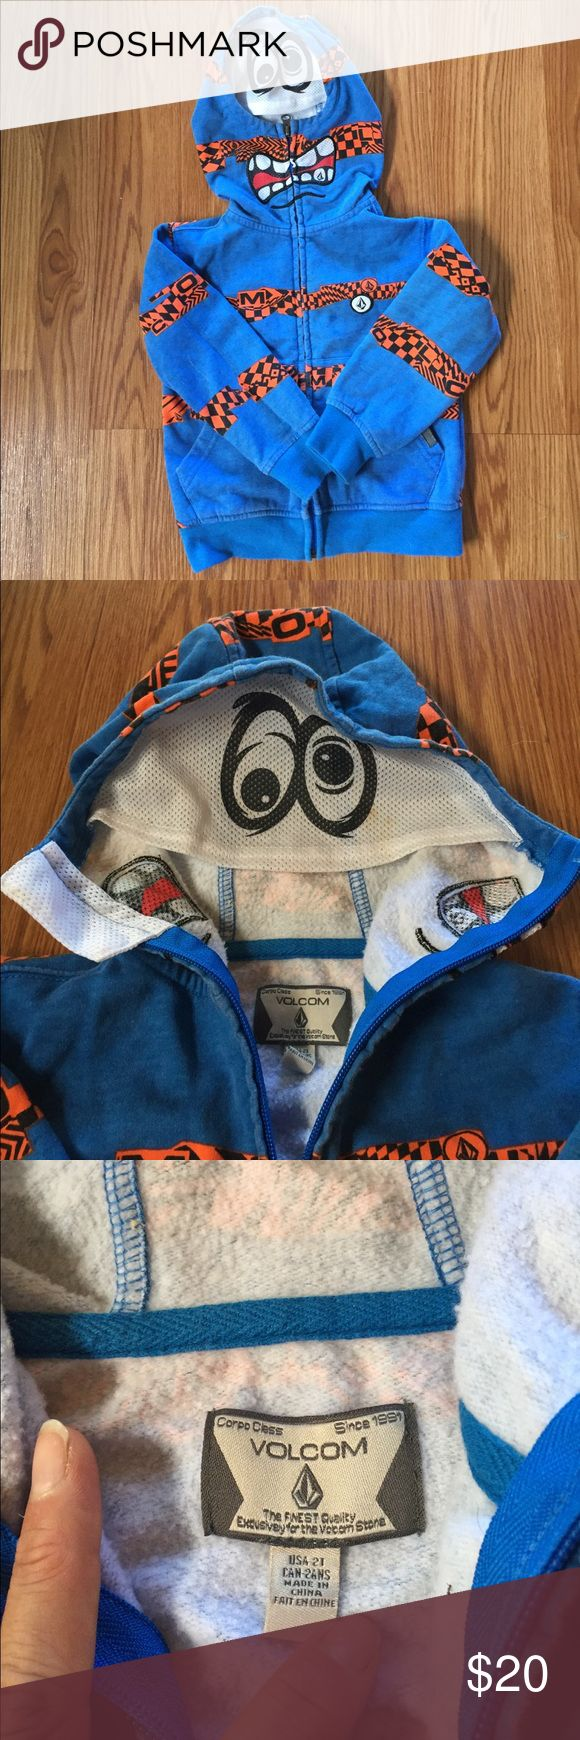 """Little boys Volcom hoodie Super fun mesh """"crazy eyes"""" and mouth when u zip it up and pull out the mesh part. Excellent condition, worn maybe 3 times max. Only a small stain on the mesh by the eyes 👀 Volcom Jackets & Coats"""